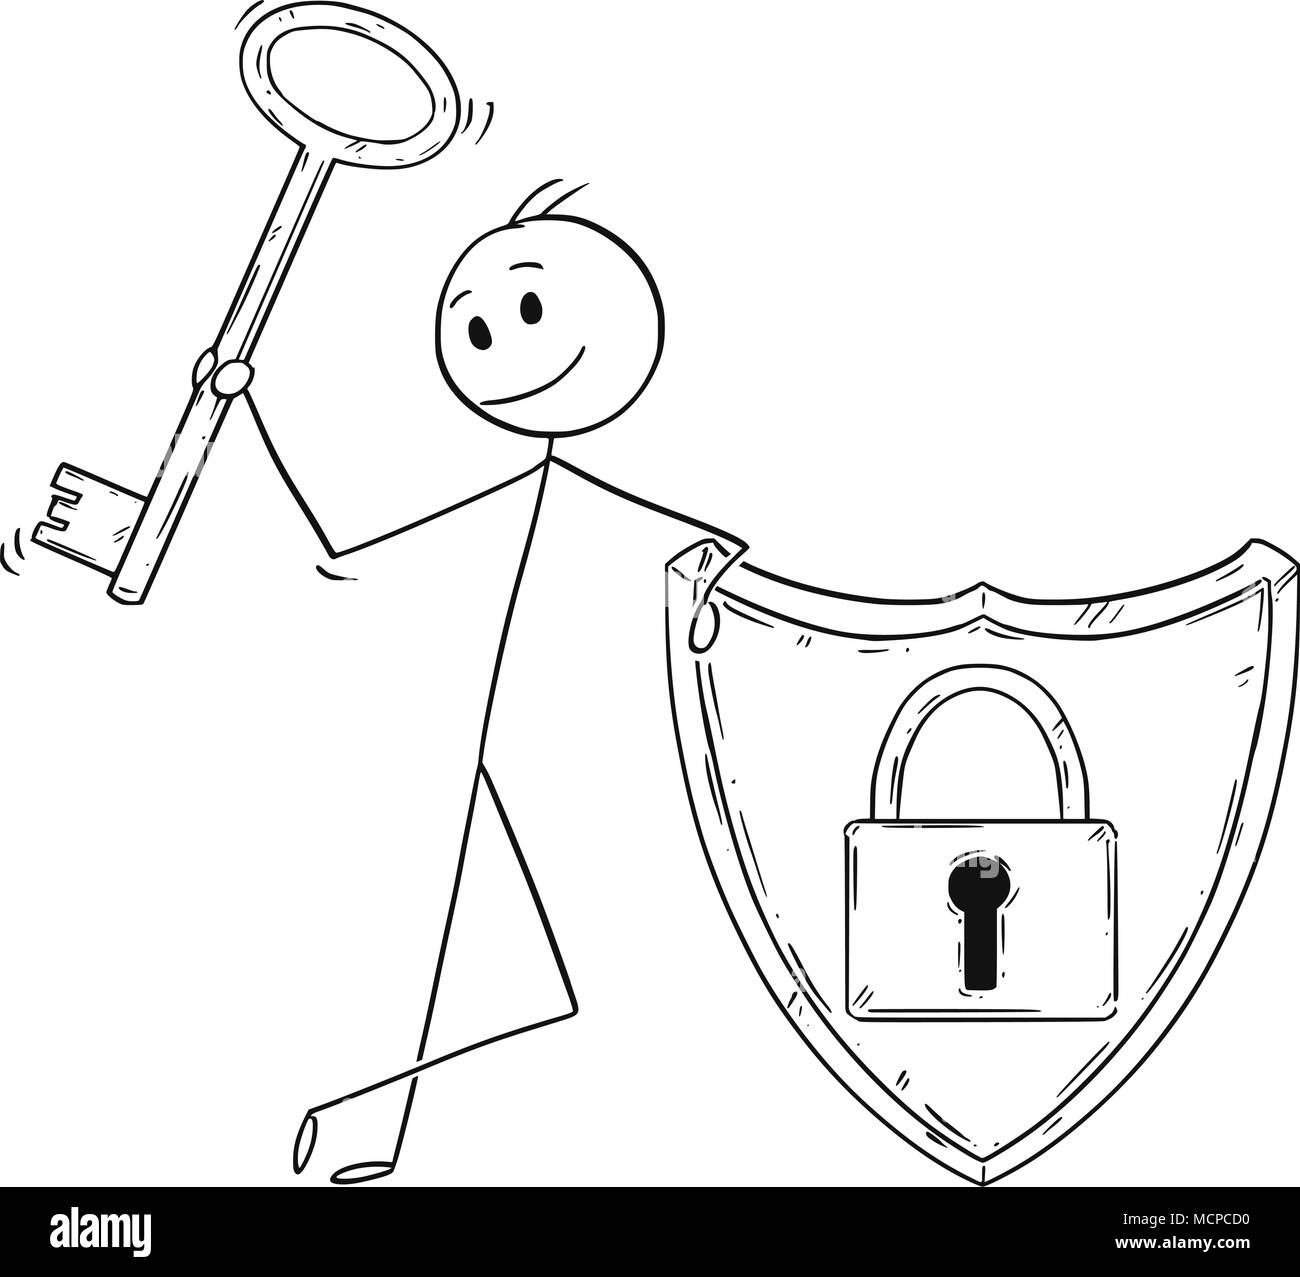 Cartoon of Man or Businessman With Locked Shield and Holding a Key as Password and Internet Security Metaphor Stock Vector